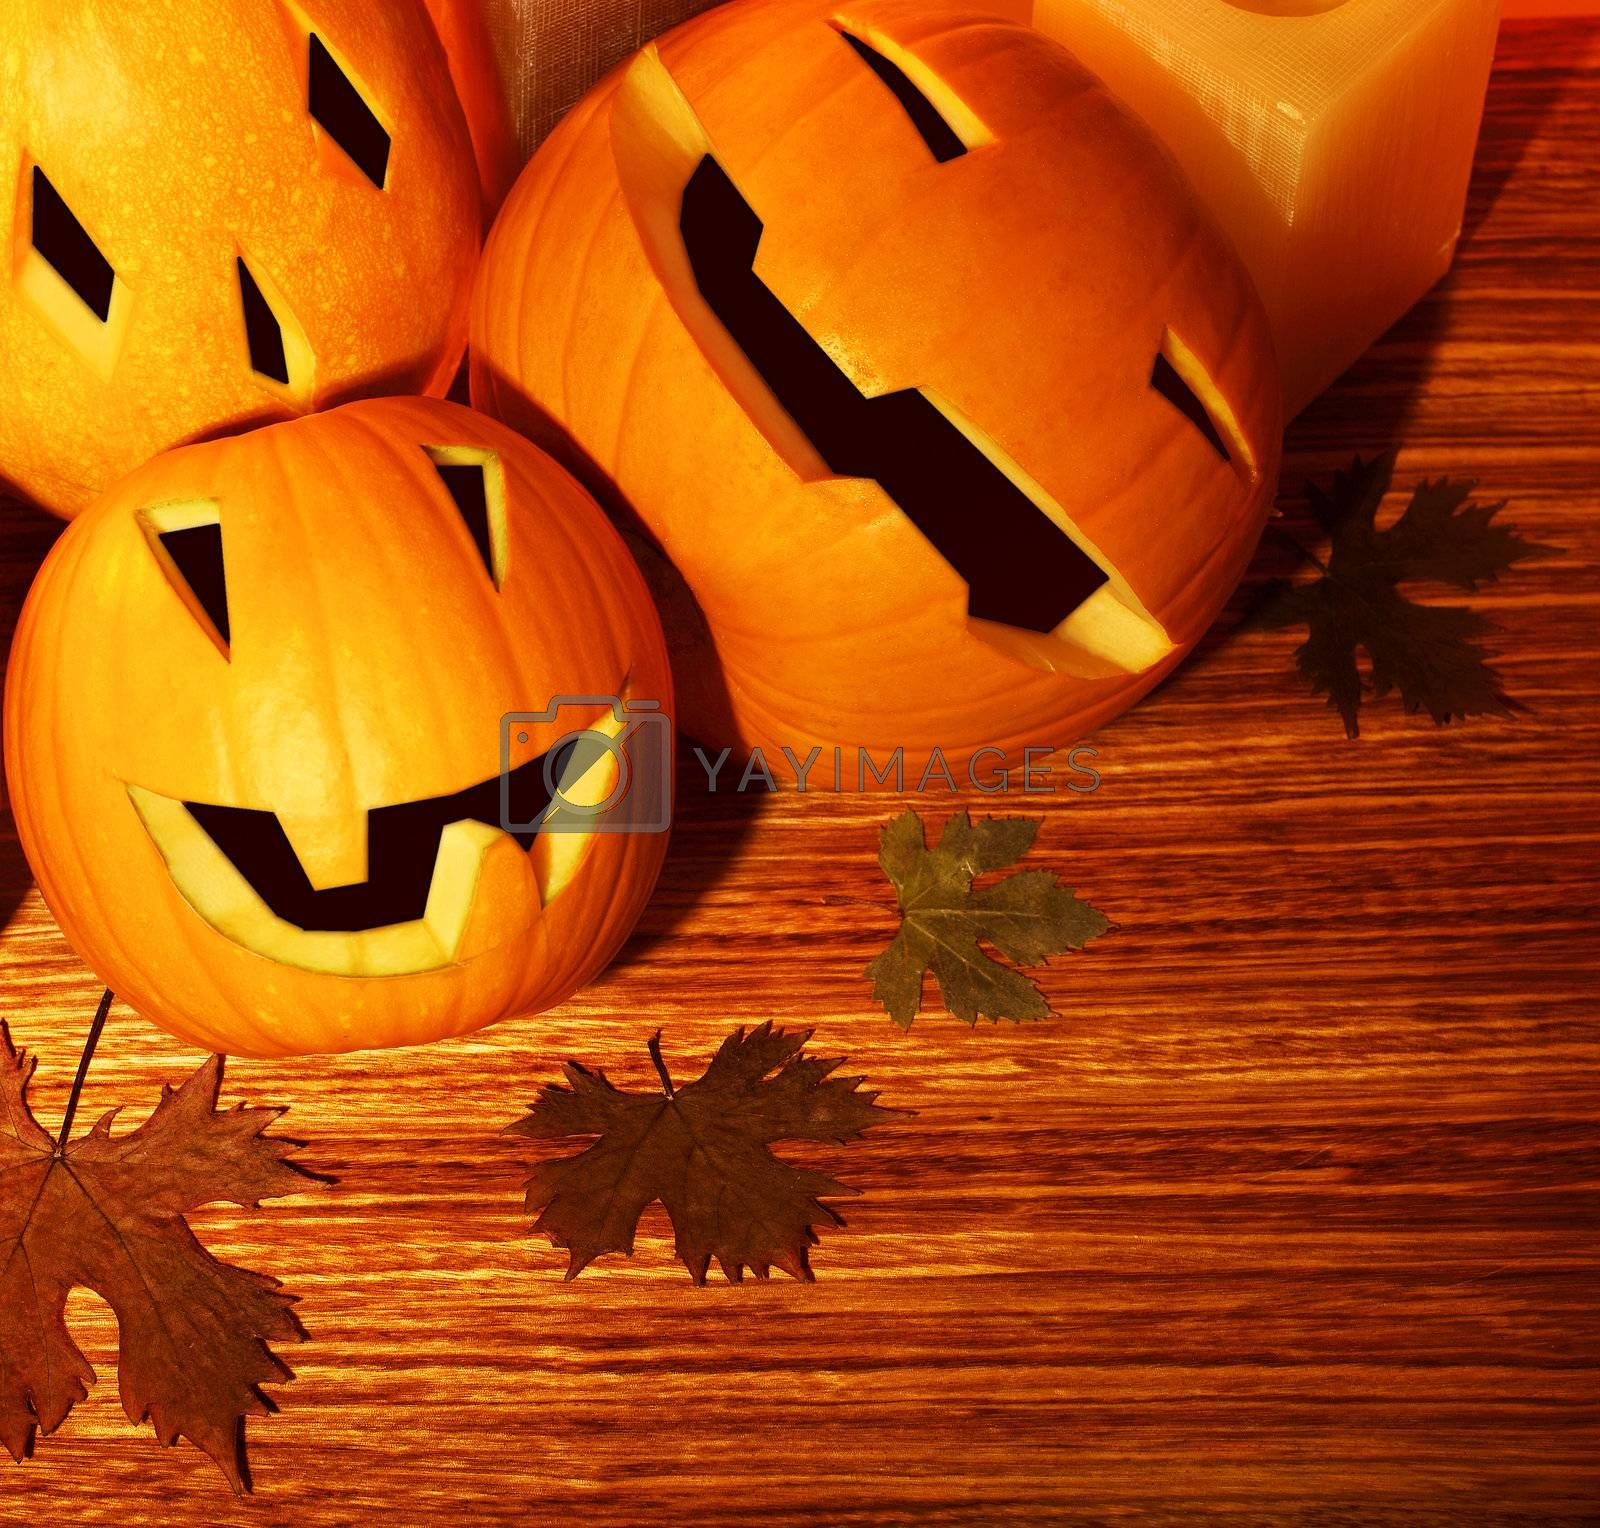 Halloween pumpkins holiday border, autumn wooden background, traditional jack-o-lantern over wood with dry leaves, night party decoration